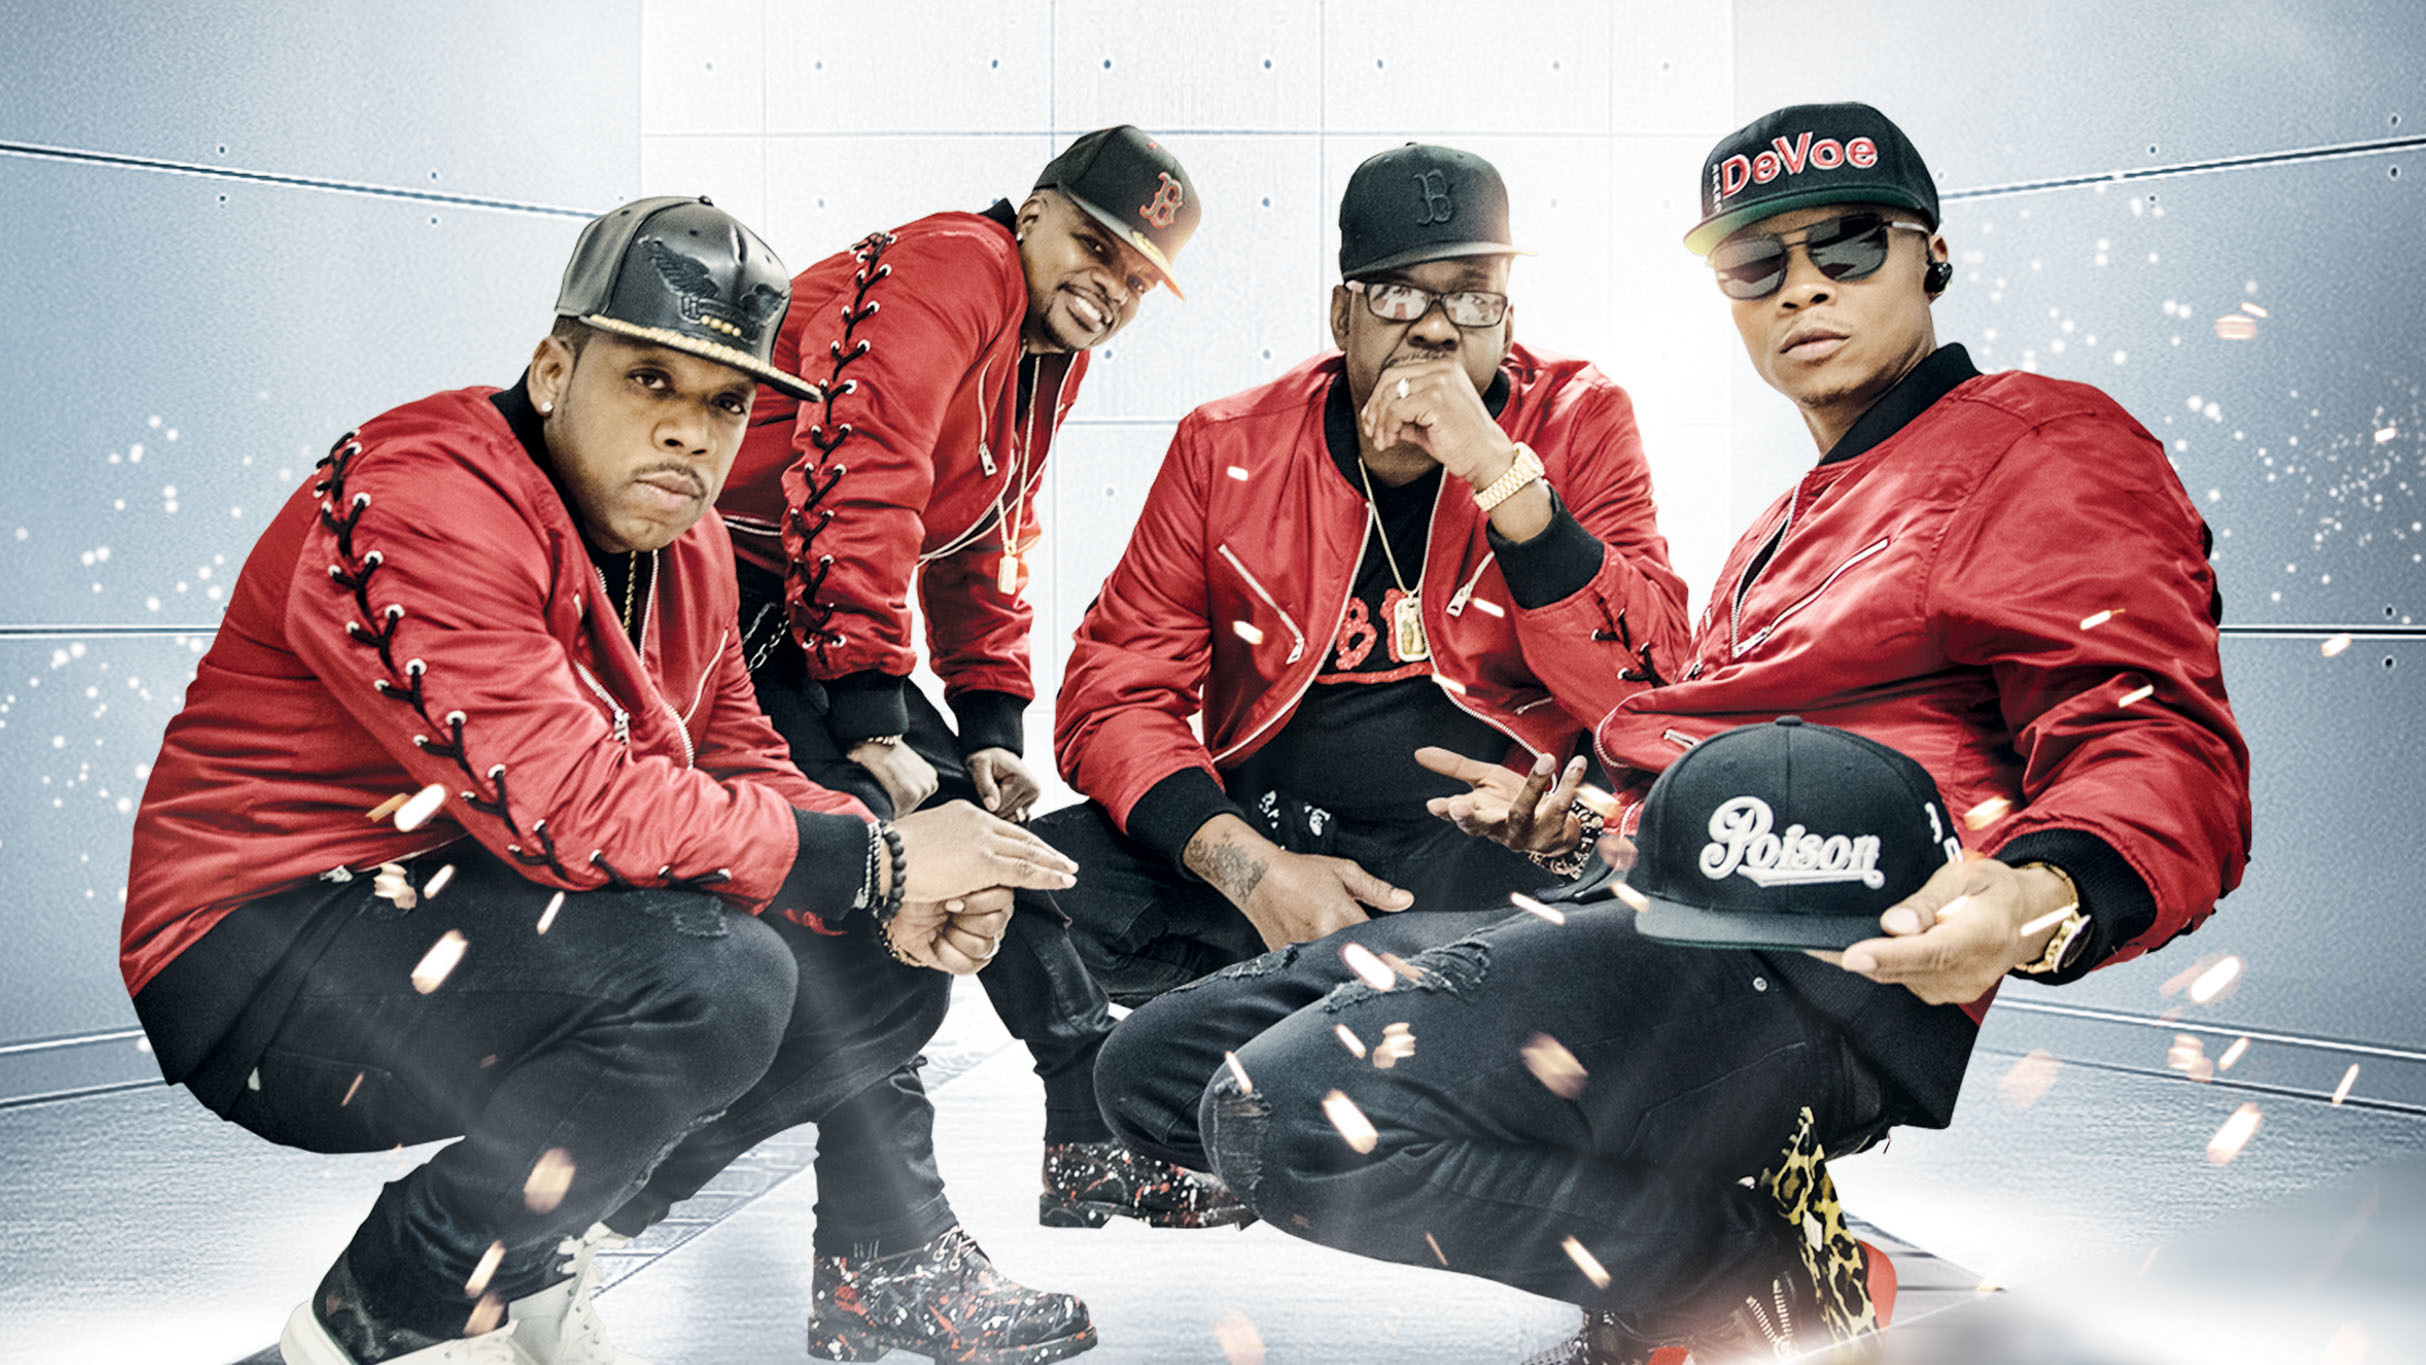 RBRM – RONNIE, BOBBY, RICKY & MIKE(BOBBY BROWN + BELL BIV DEVOE)